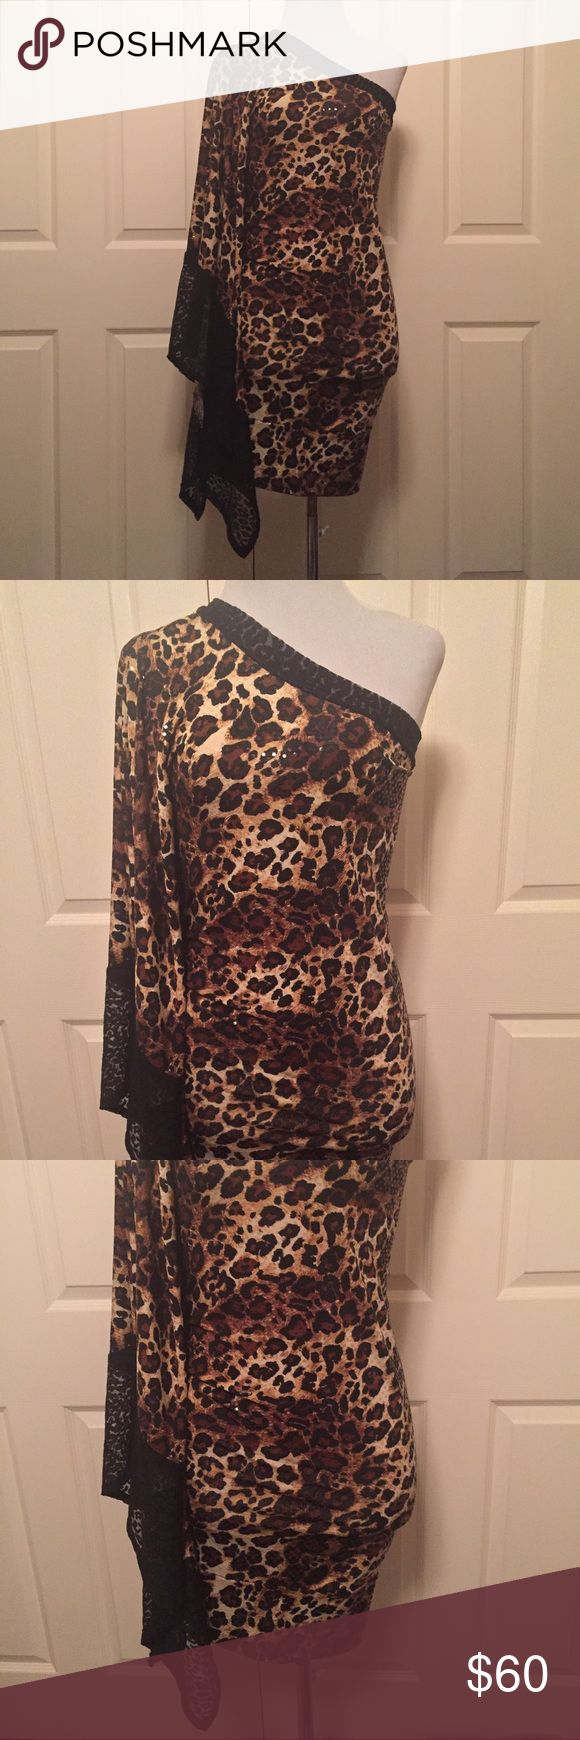 Animal print Bodycon dress. Stretch with lace trim Asymmetric Animal print dress. Lycra Stretch with lace trim.  Custom Design, boutique fashion. Fits size various. Size small to fitness large. Can be worn as a dress or top. NEW. Dresses Asymmetrical